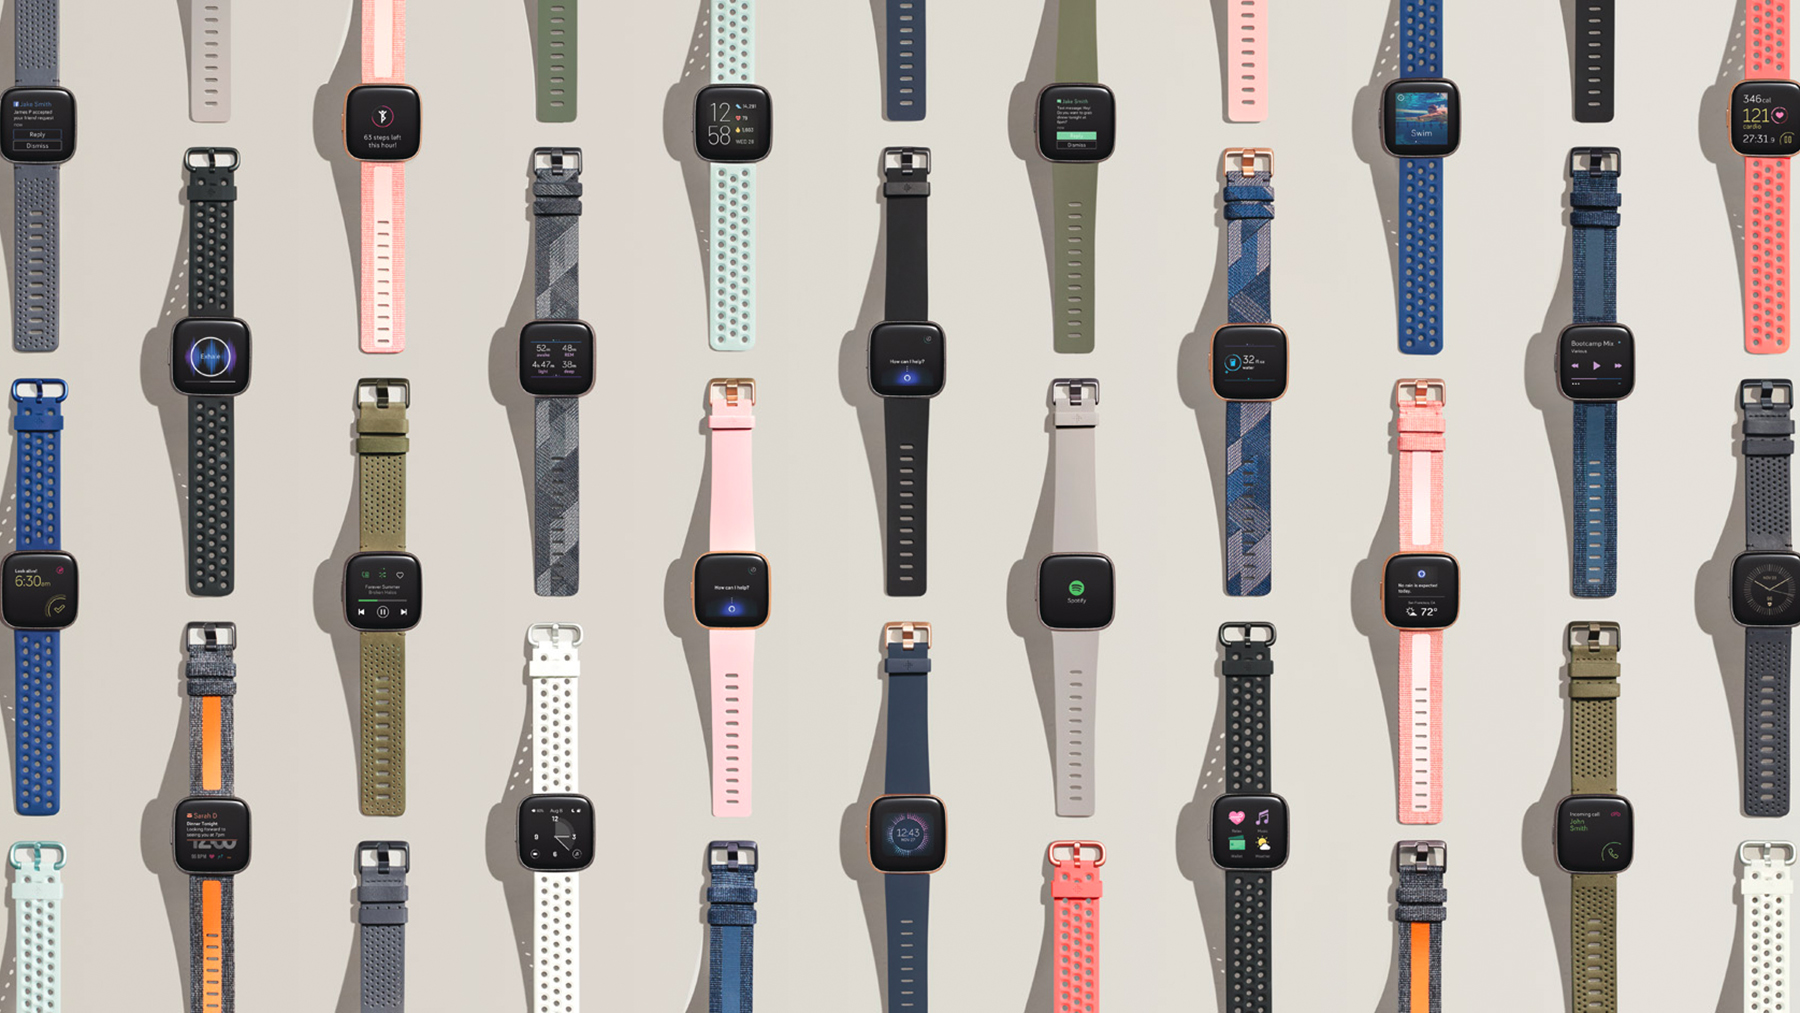 The best smartwatches of 2019